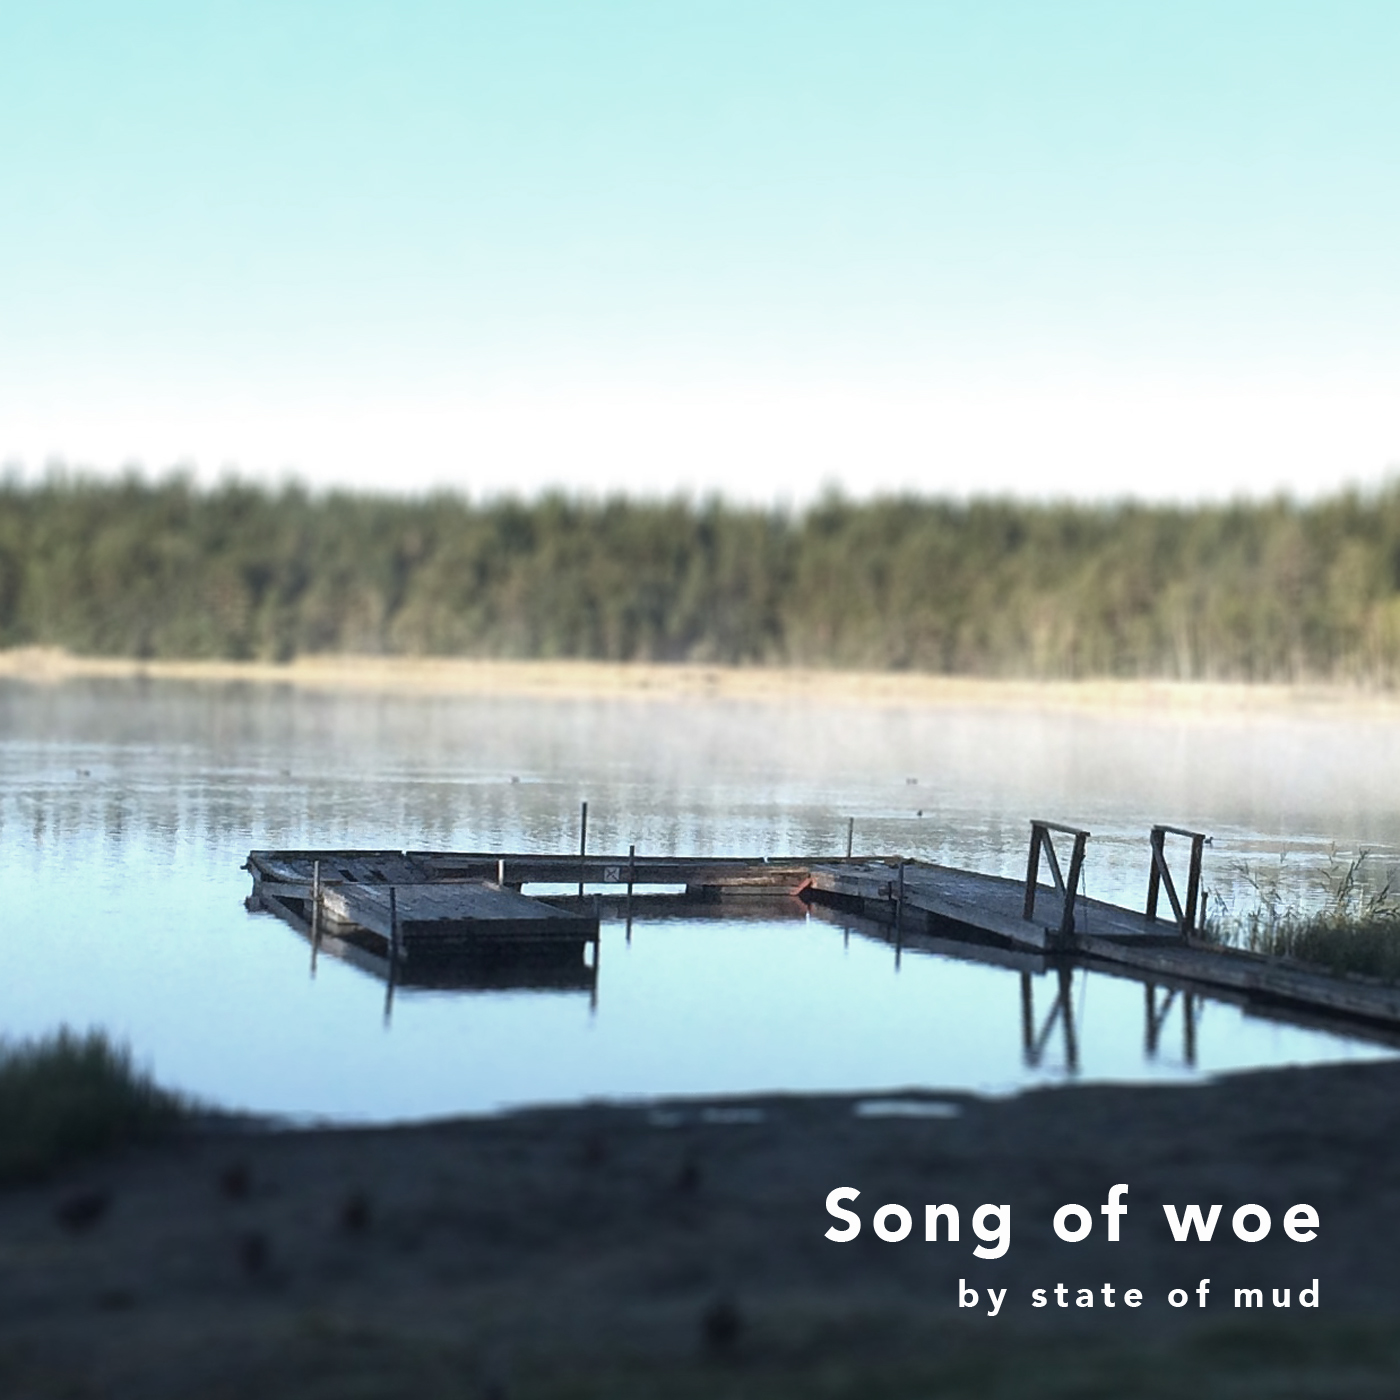 Song of woe